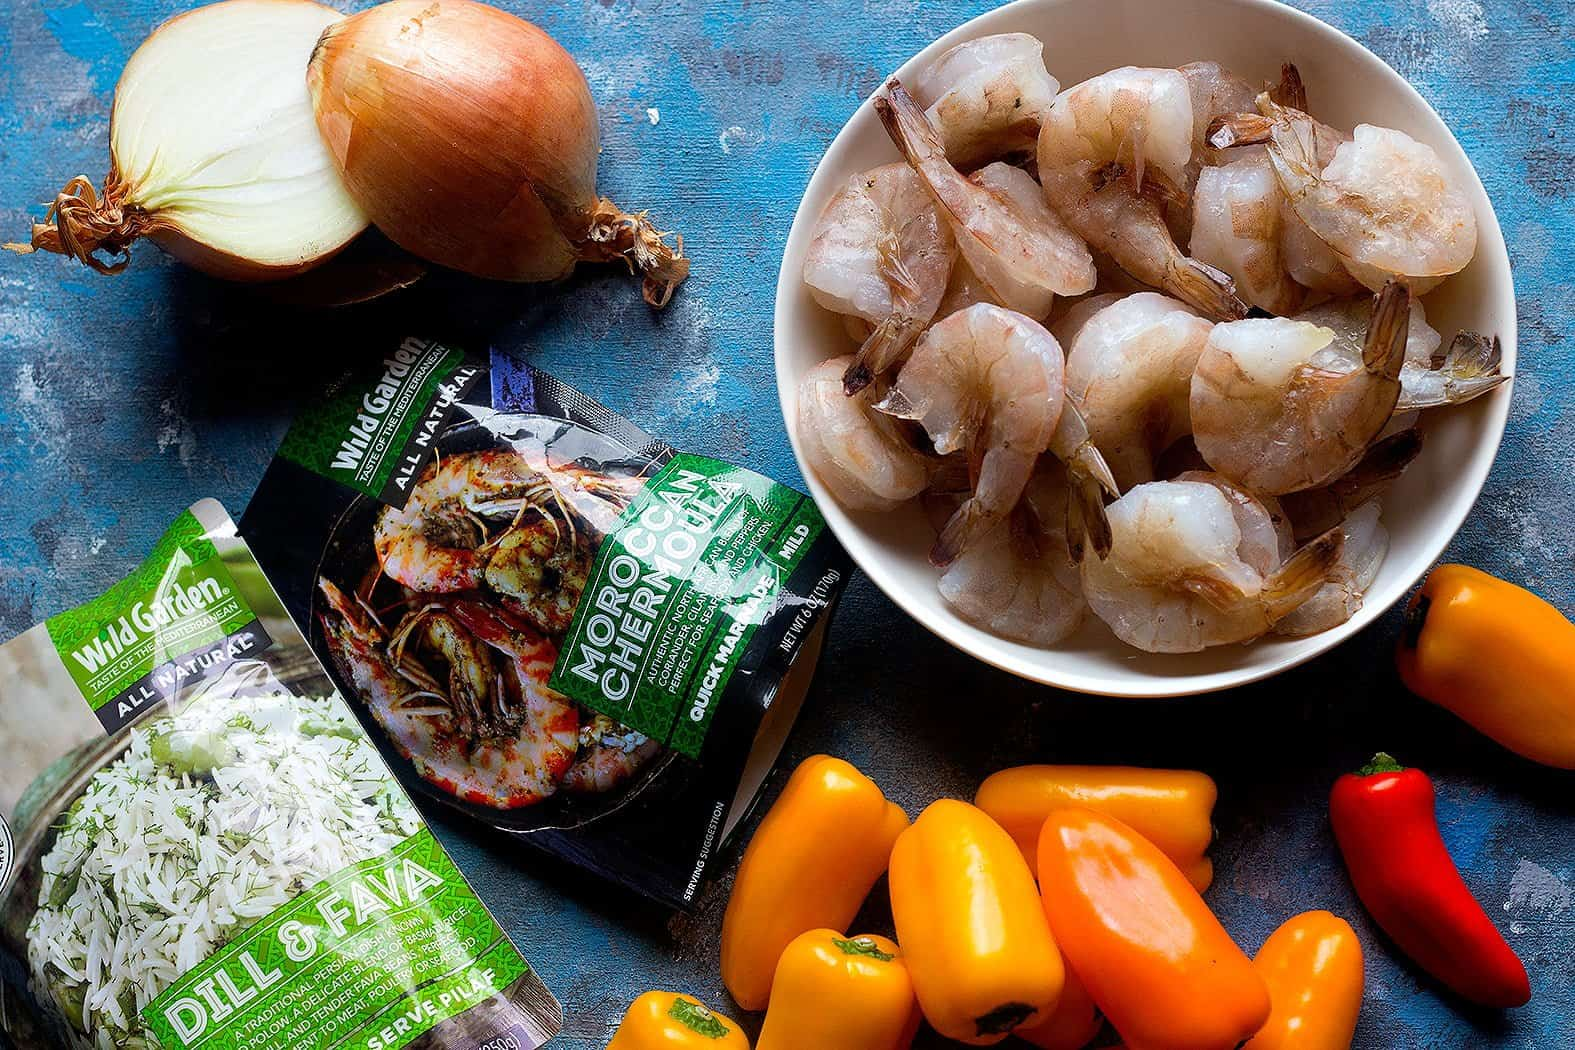 To make baked shrimp with chermoula sauce you need the following ingredients: Shrimp:It's best to use raw, deveined and peeled shrimp. You can leave the tail on or take it off as well. Onion:A bed of sliced onion is perfect for this dish. Peppers Chermoula sauce:this sauce gives so much flavor to the shrimps and onions. And since the sauce contains sunflower oil, there is no need for melted butter.